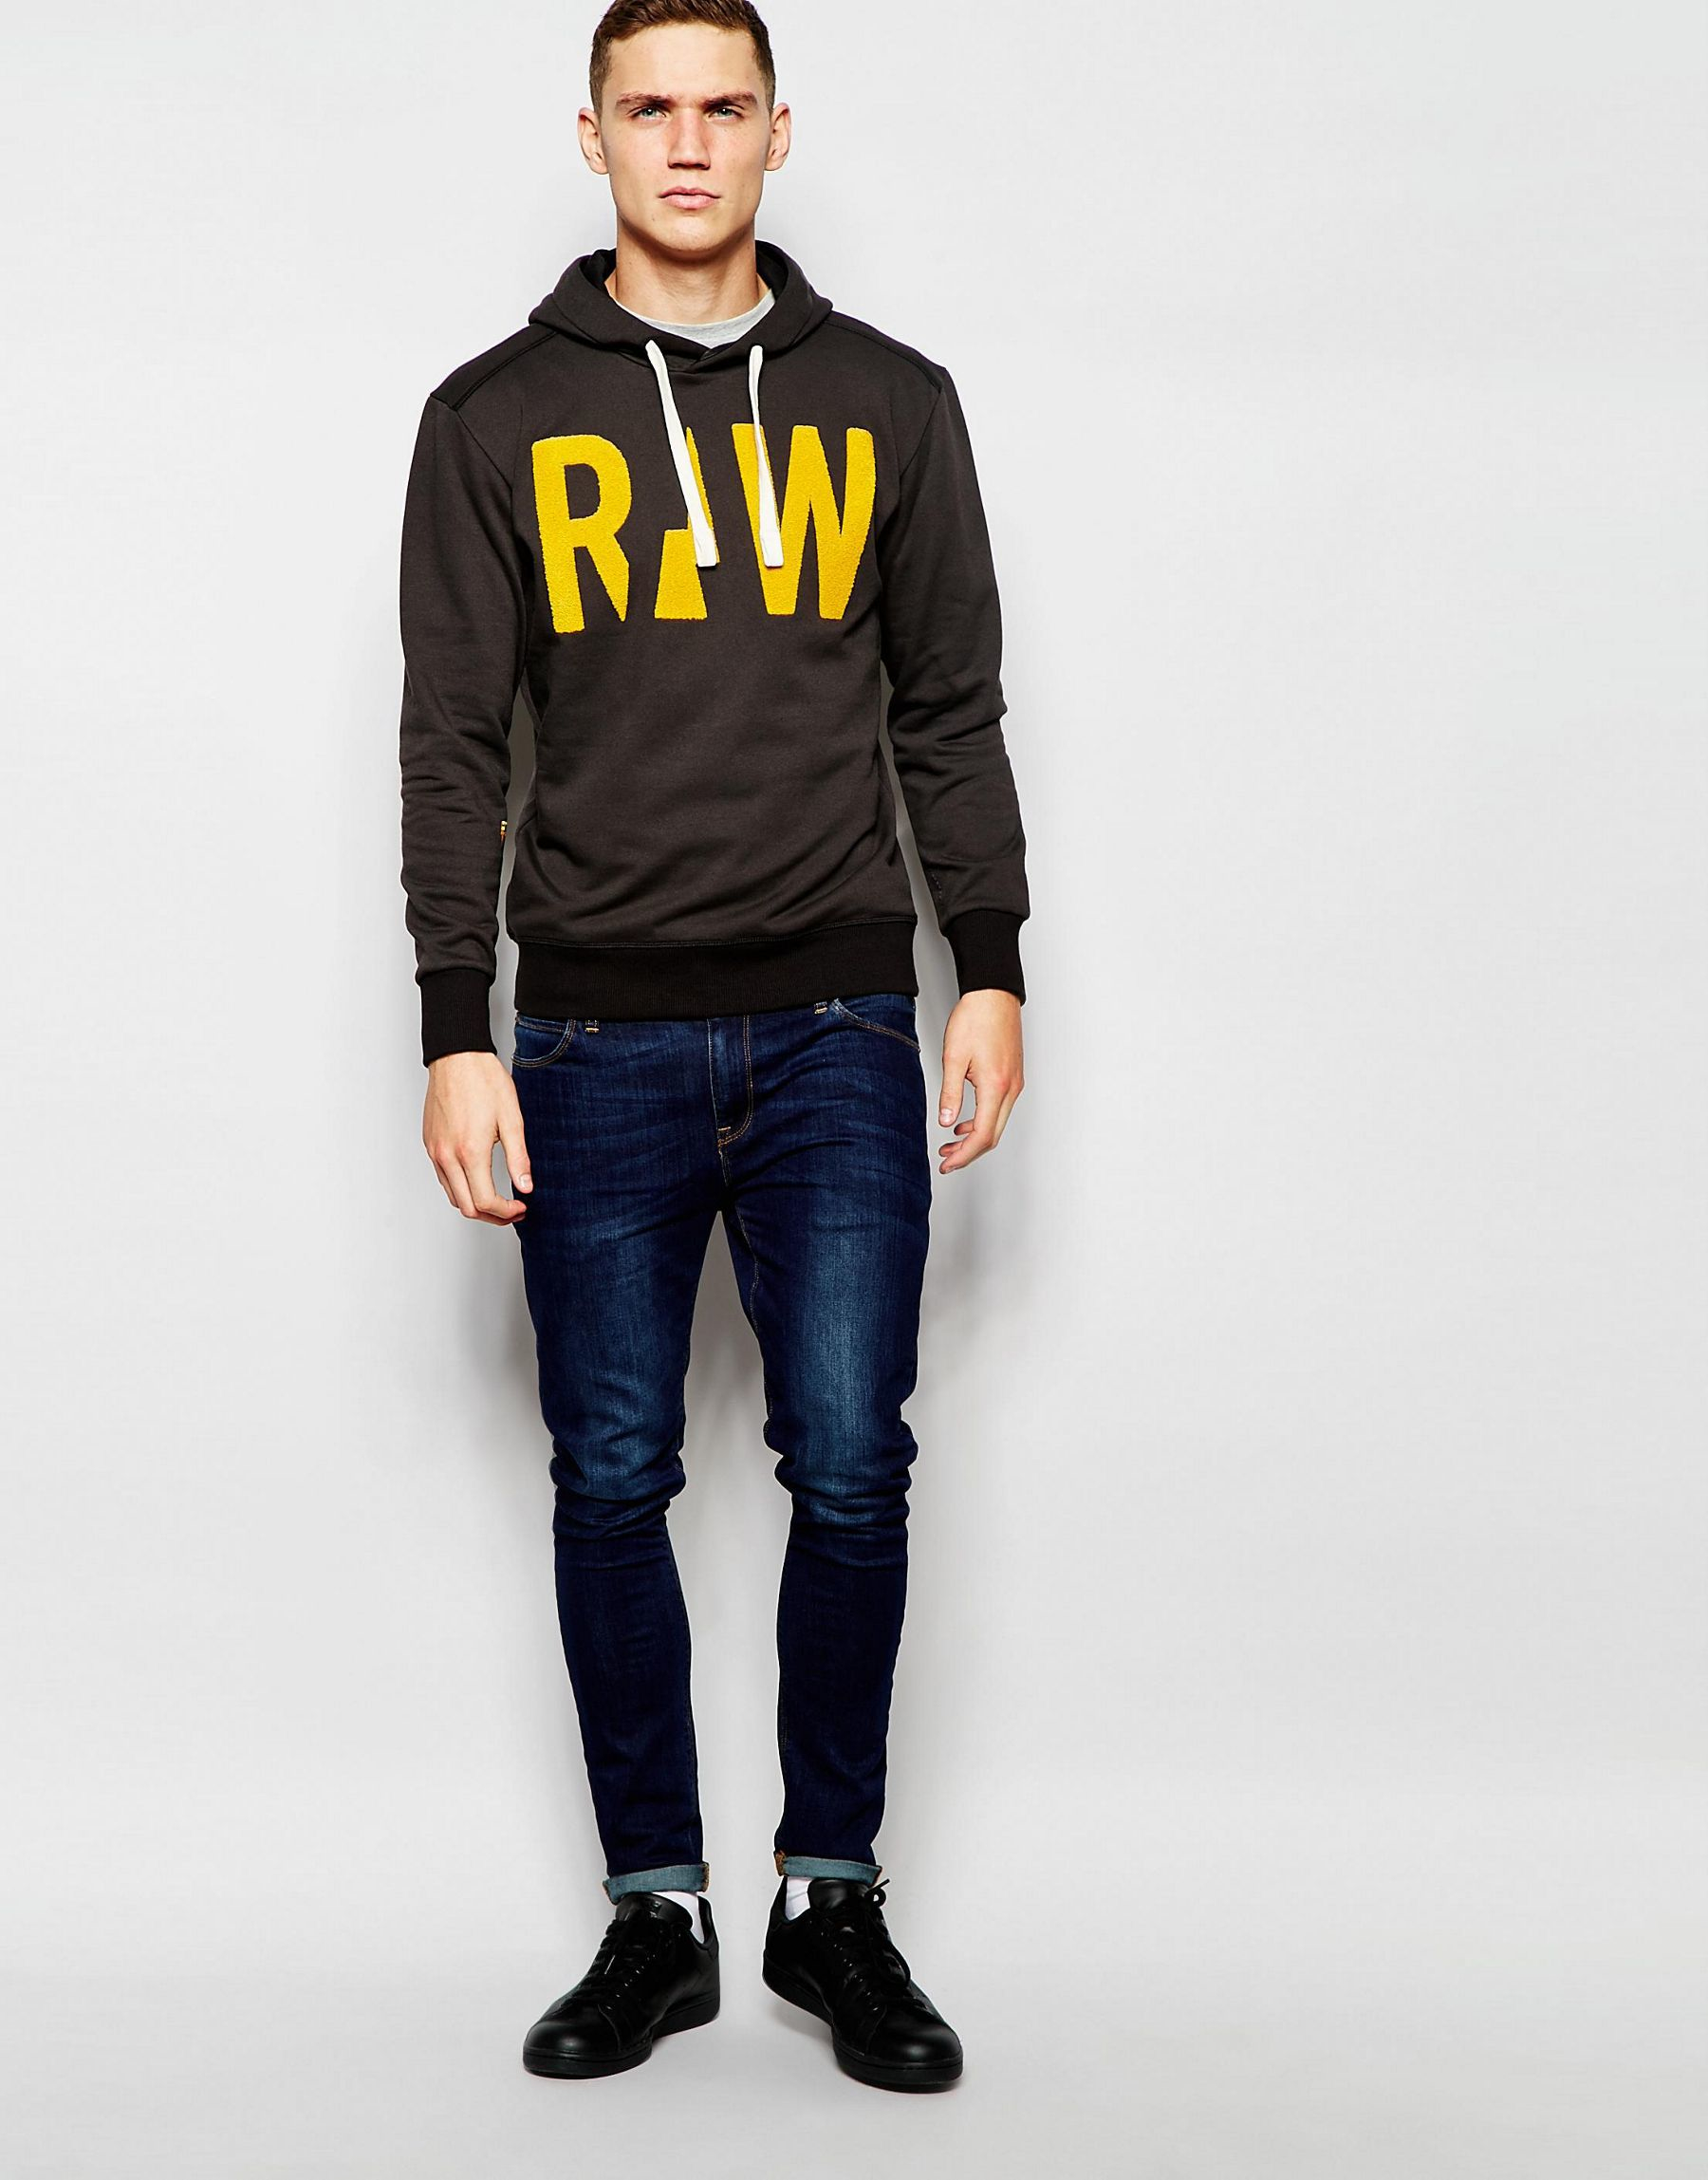 g star raw hoodie grount large raw logo in raven in gray. Black Bedroom Furniture Sets. Home Design Ideas